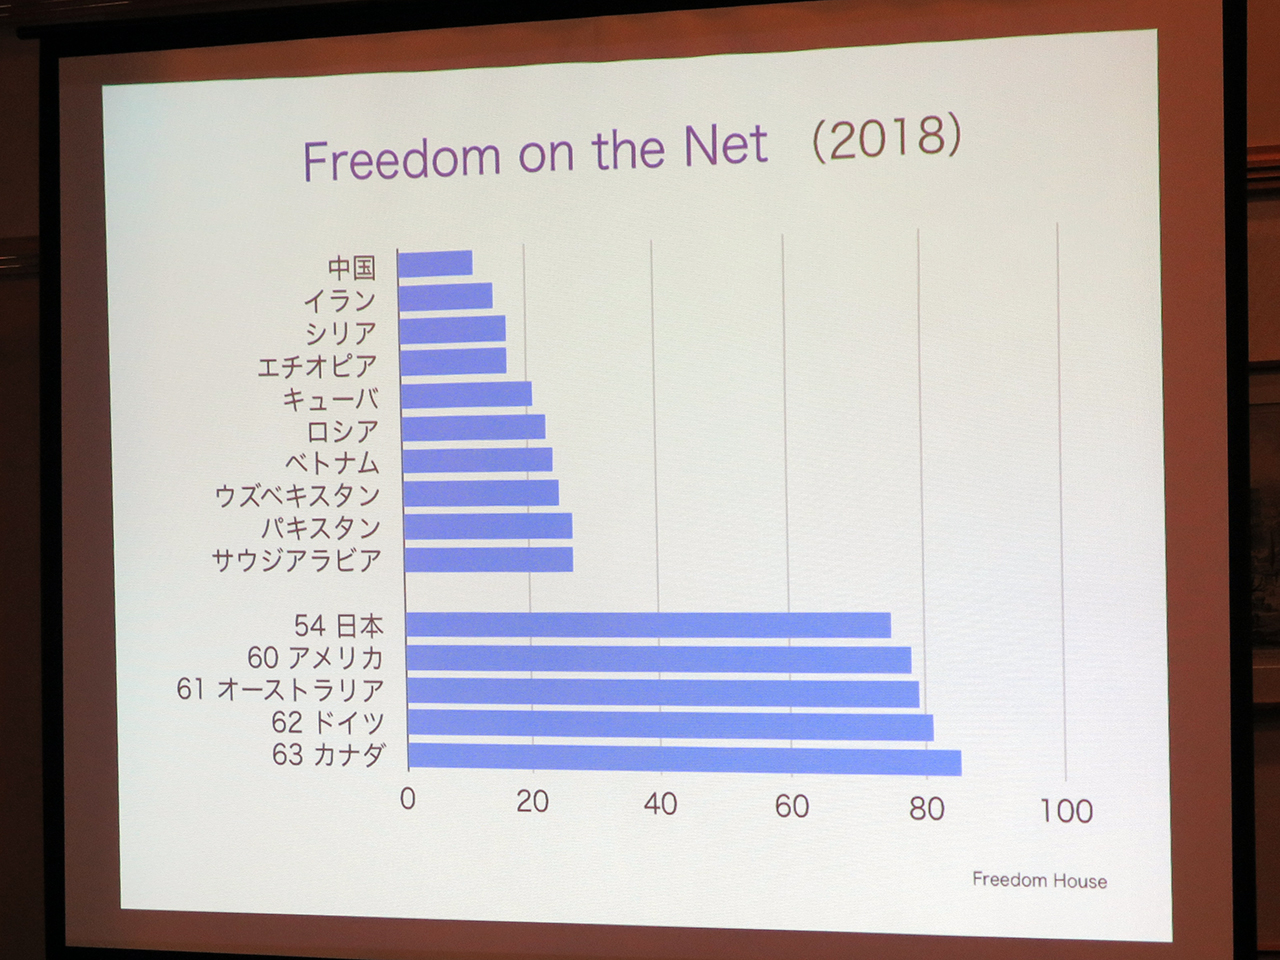 Freedom on the Net 2018